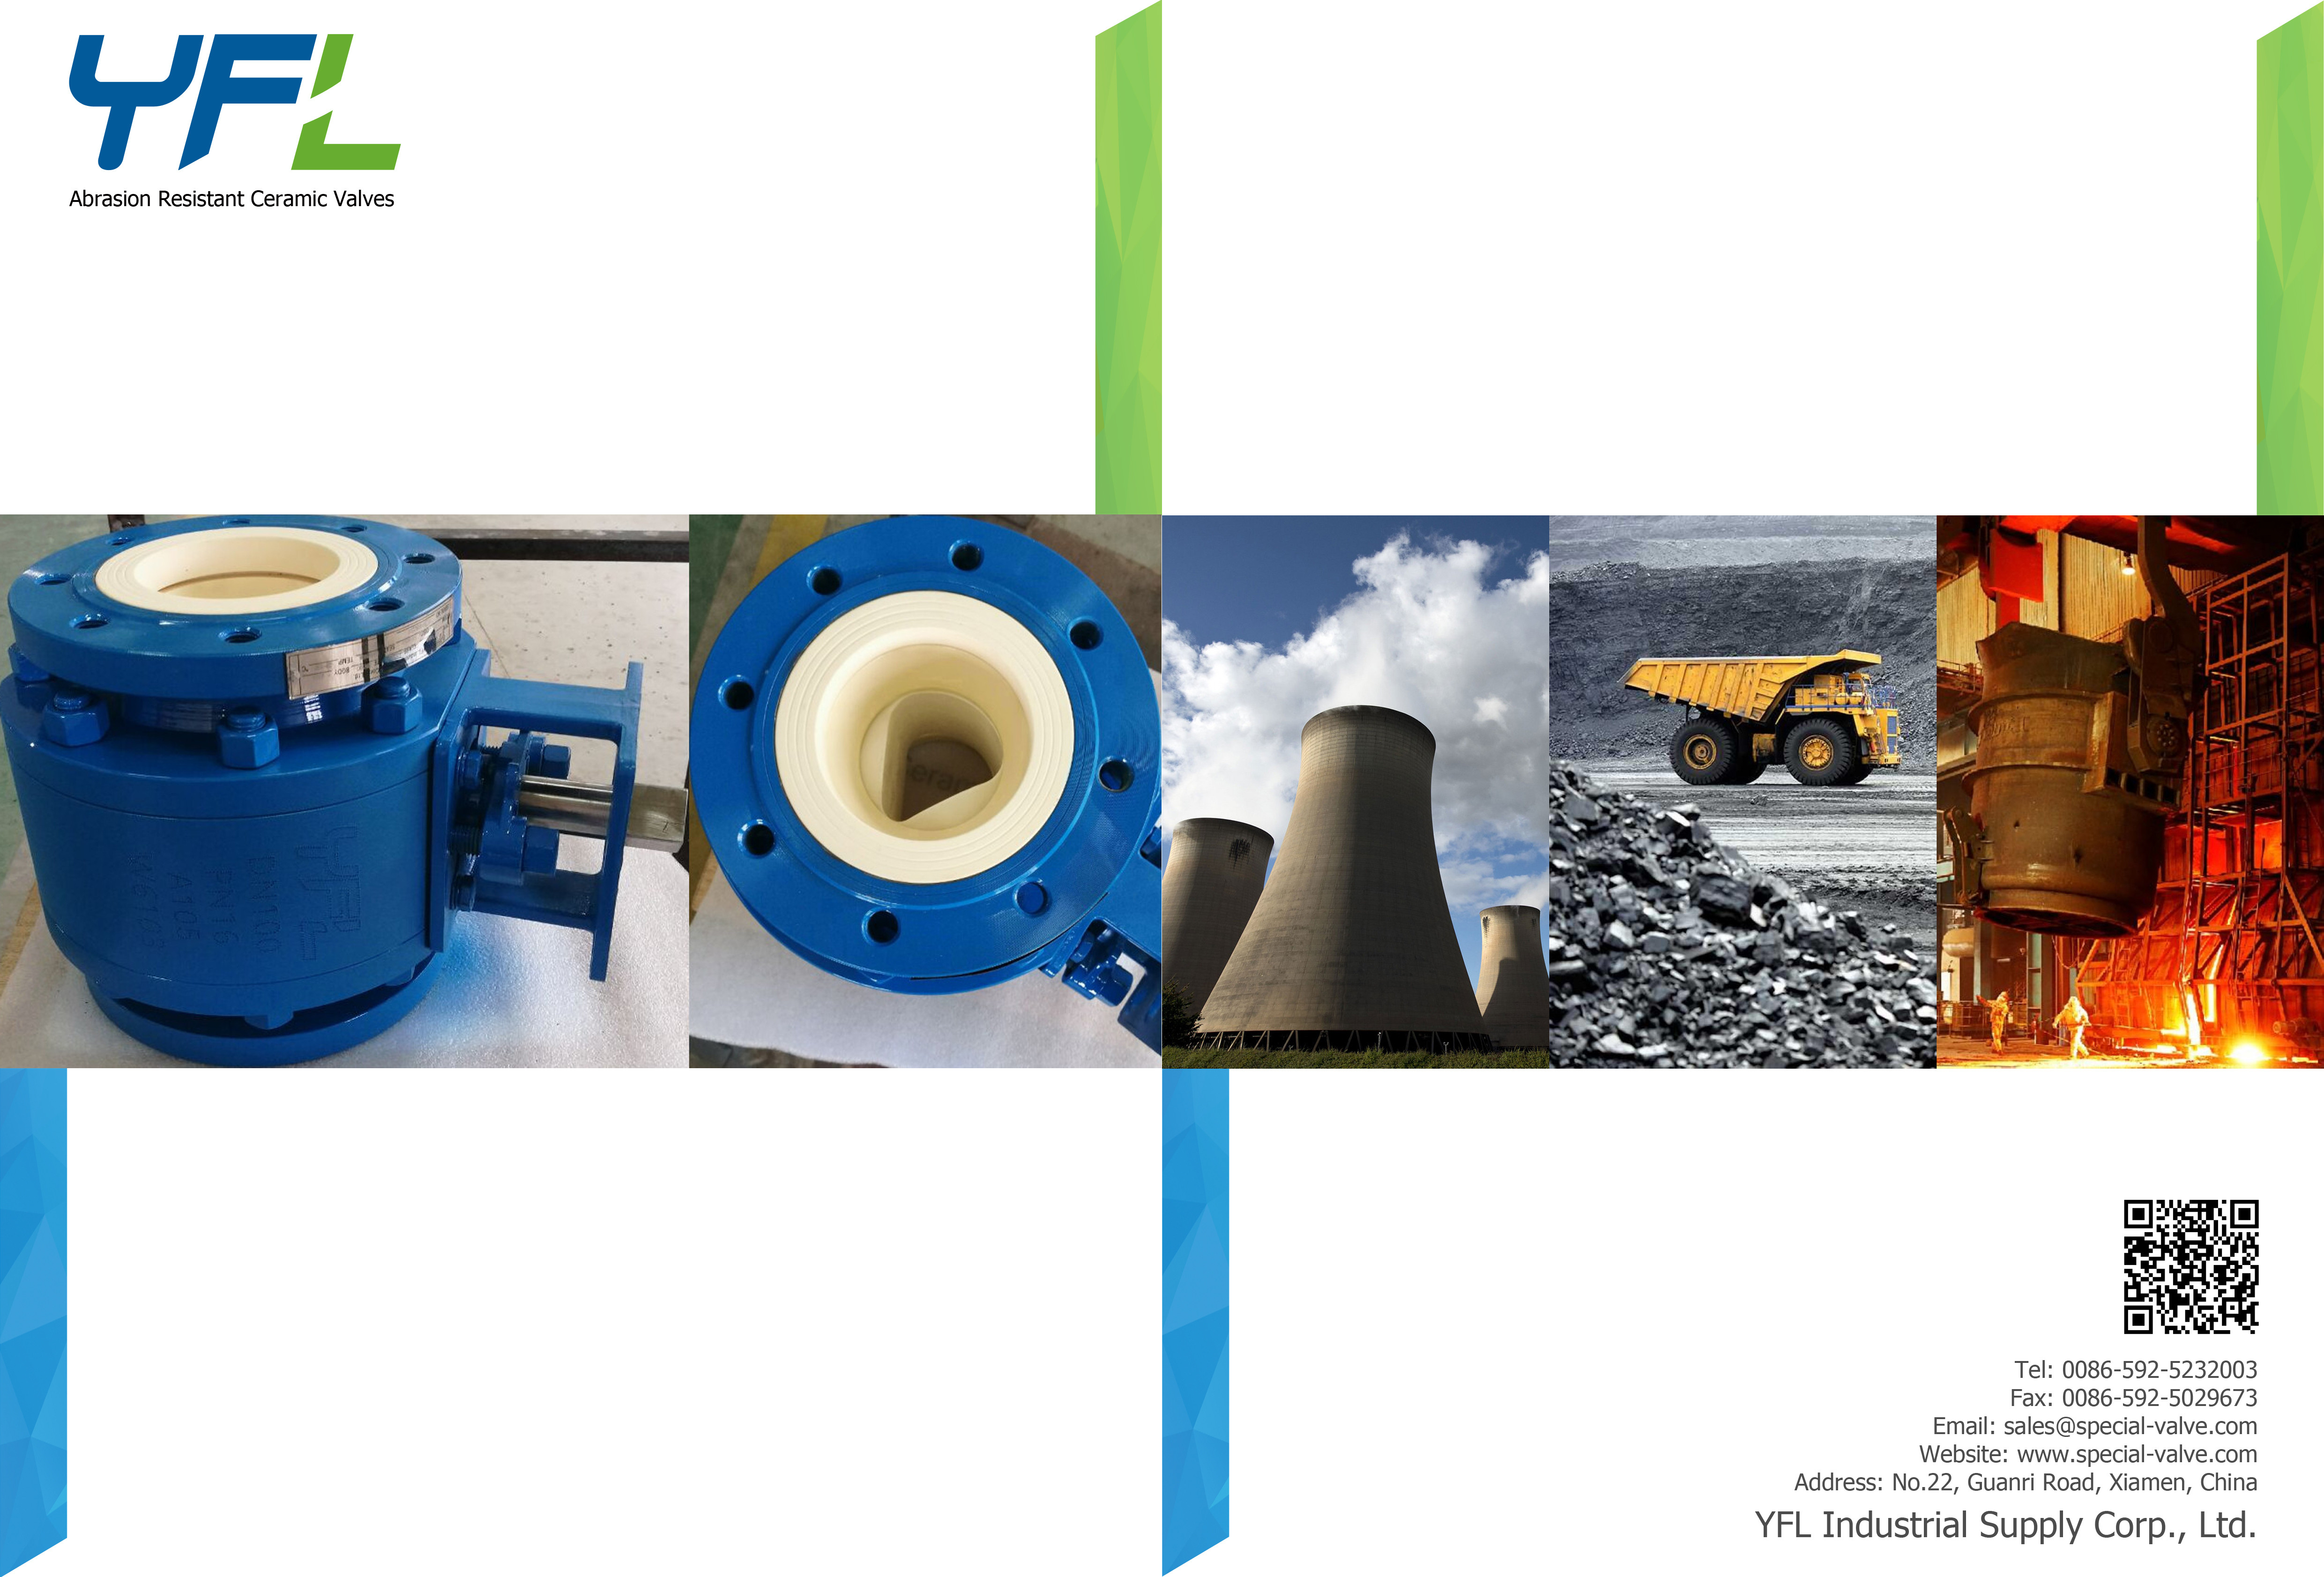 Latest Catalogue of Abrasion Resistant Ceramic Valves